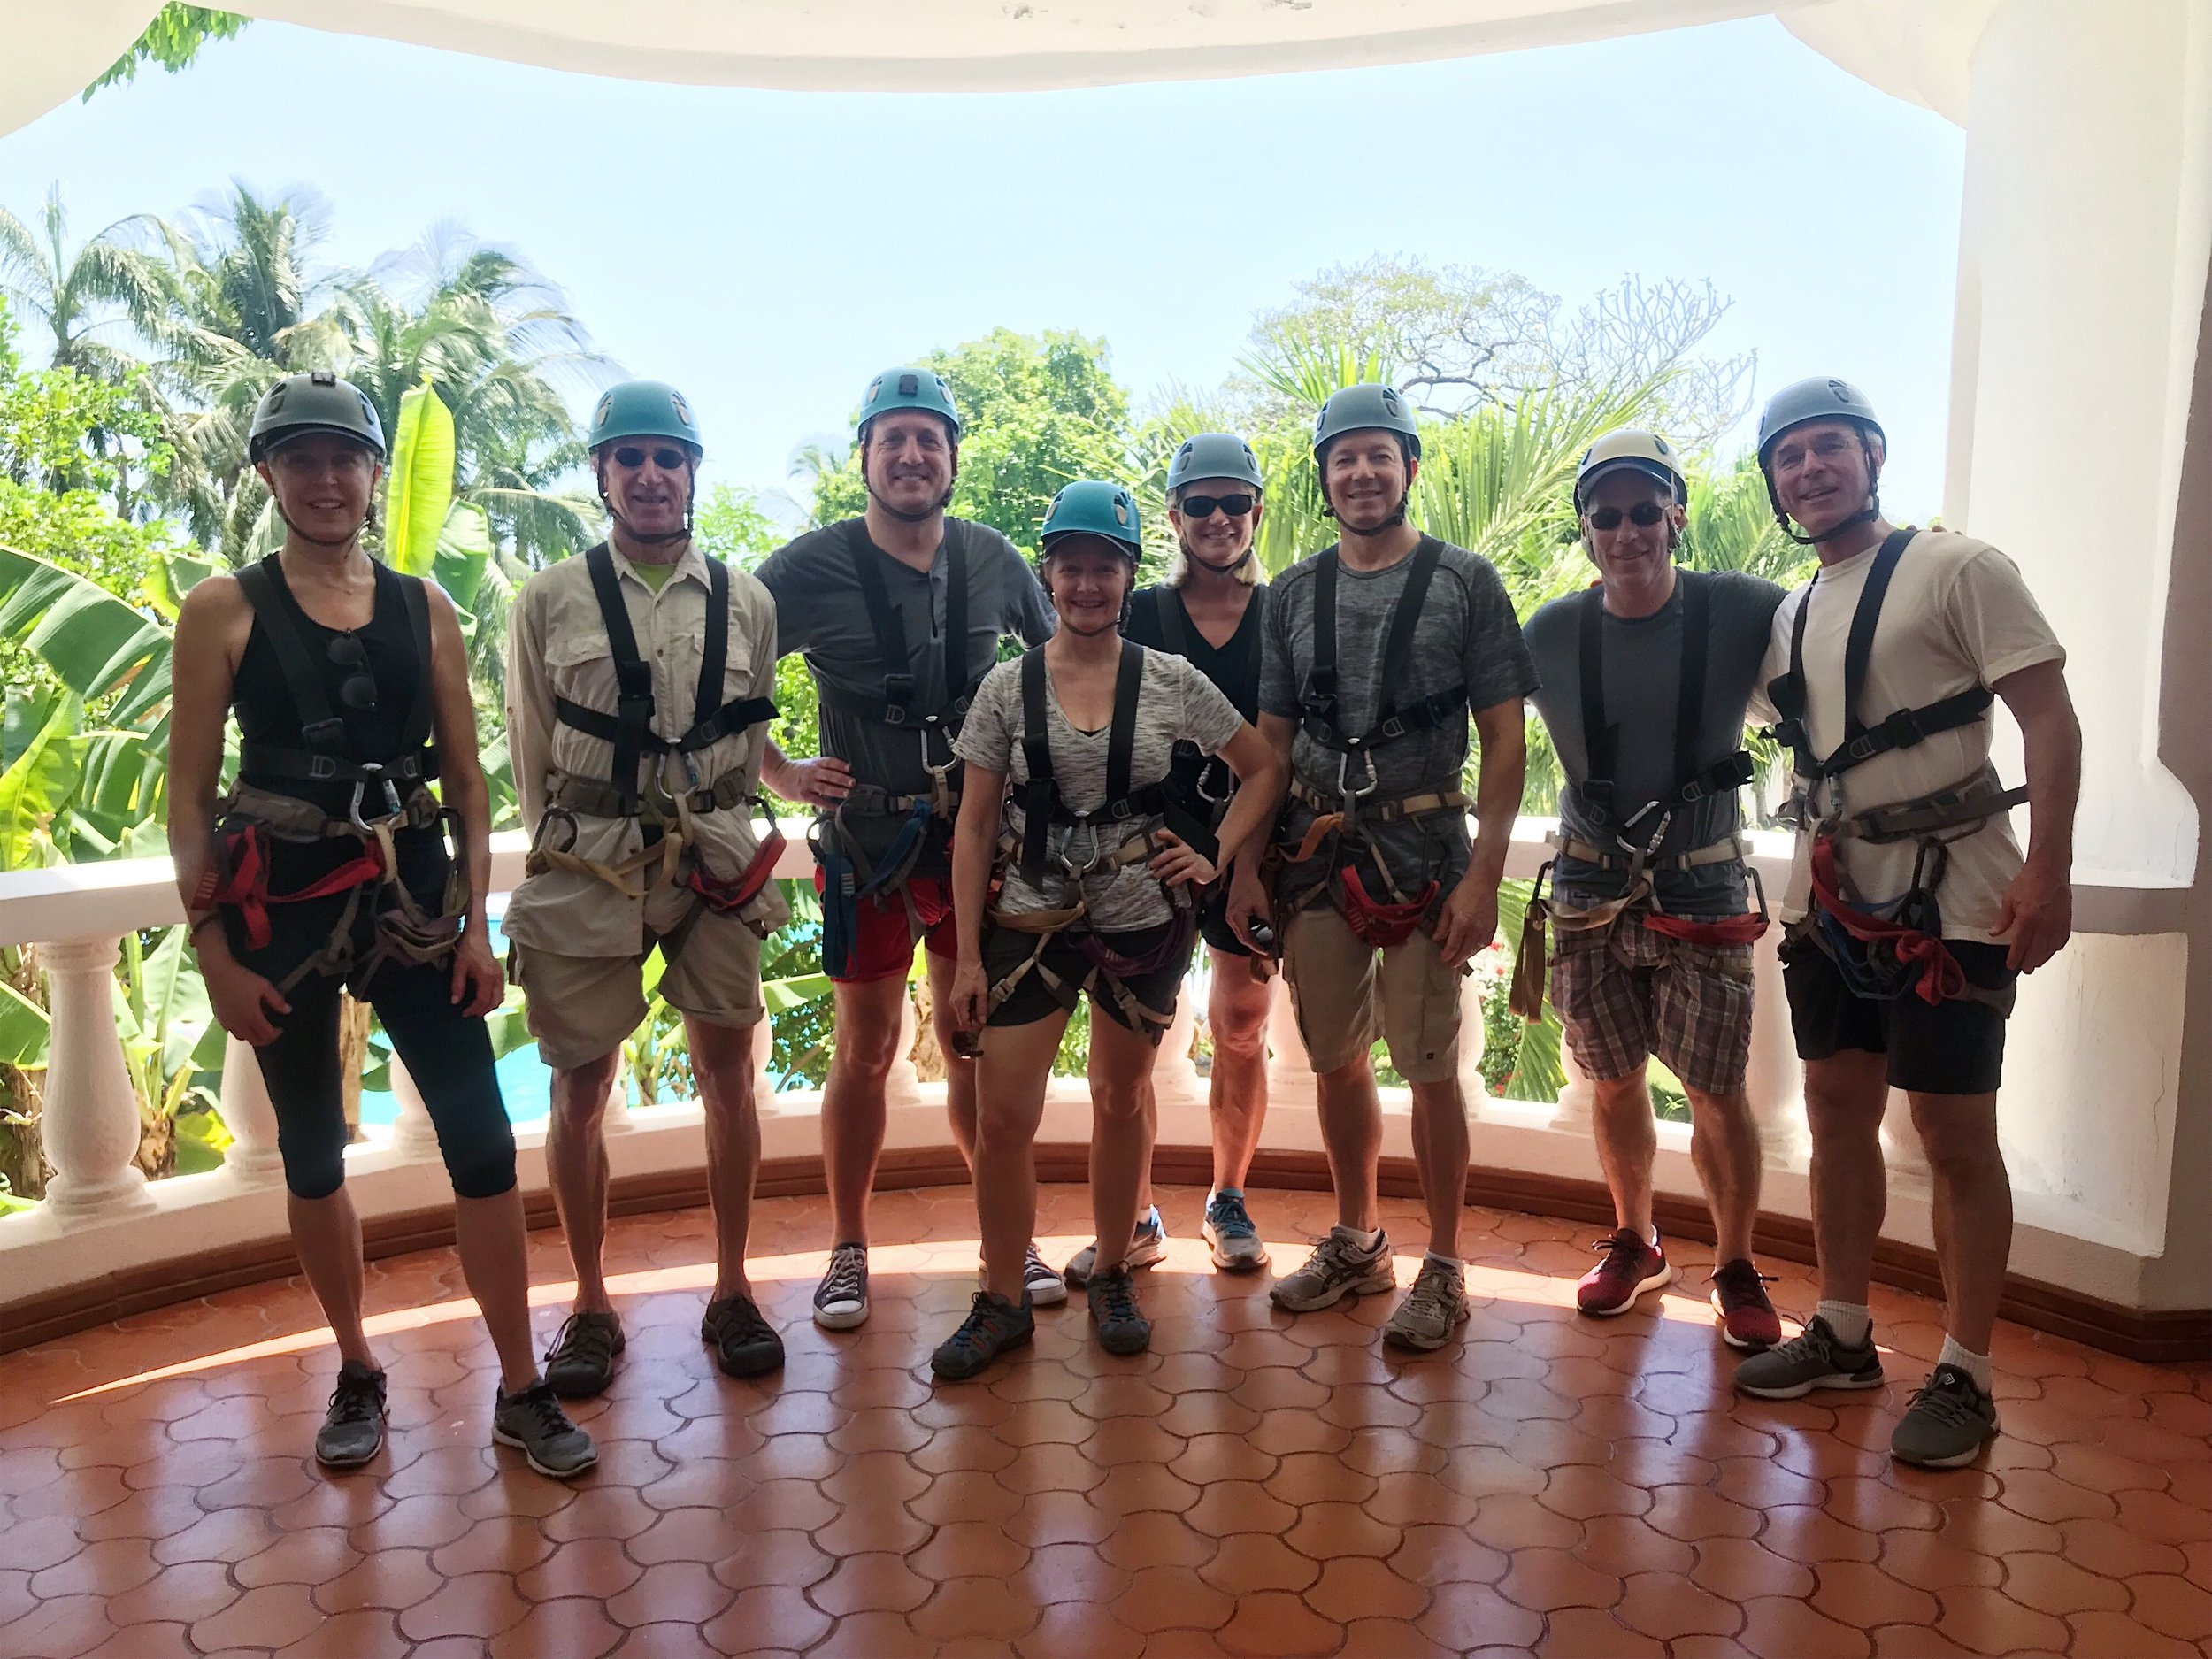 zip lining gearing up.jpeg